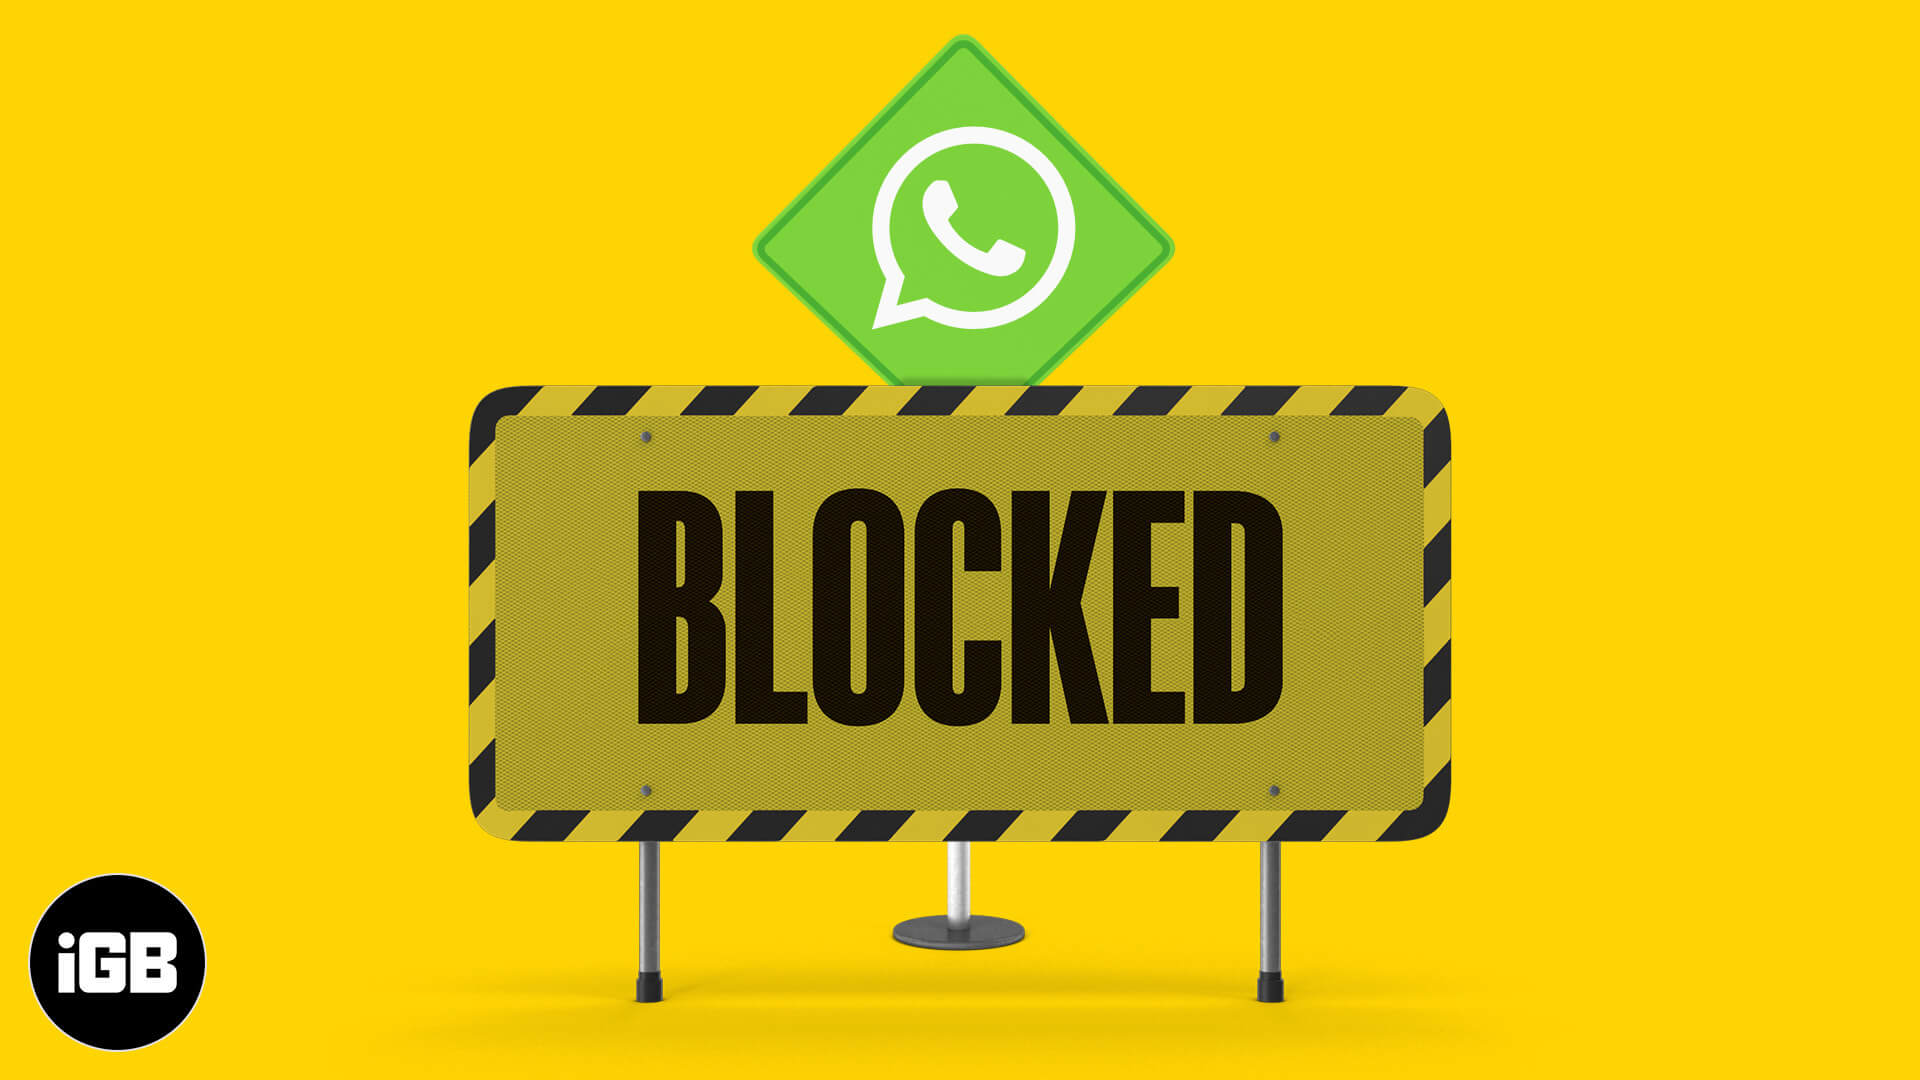 how to block someone on whatsapp for iphone and android